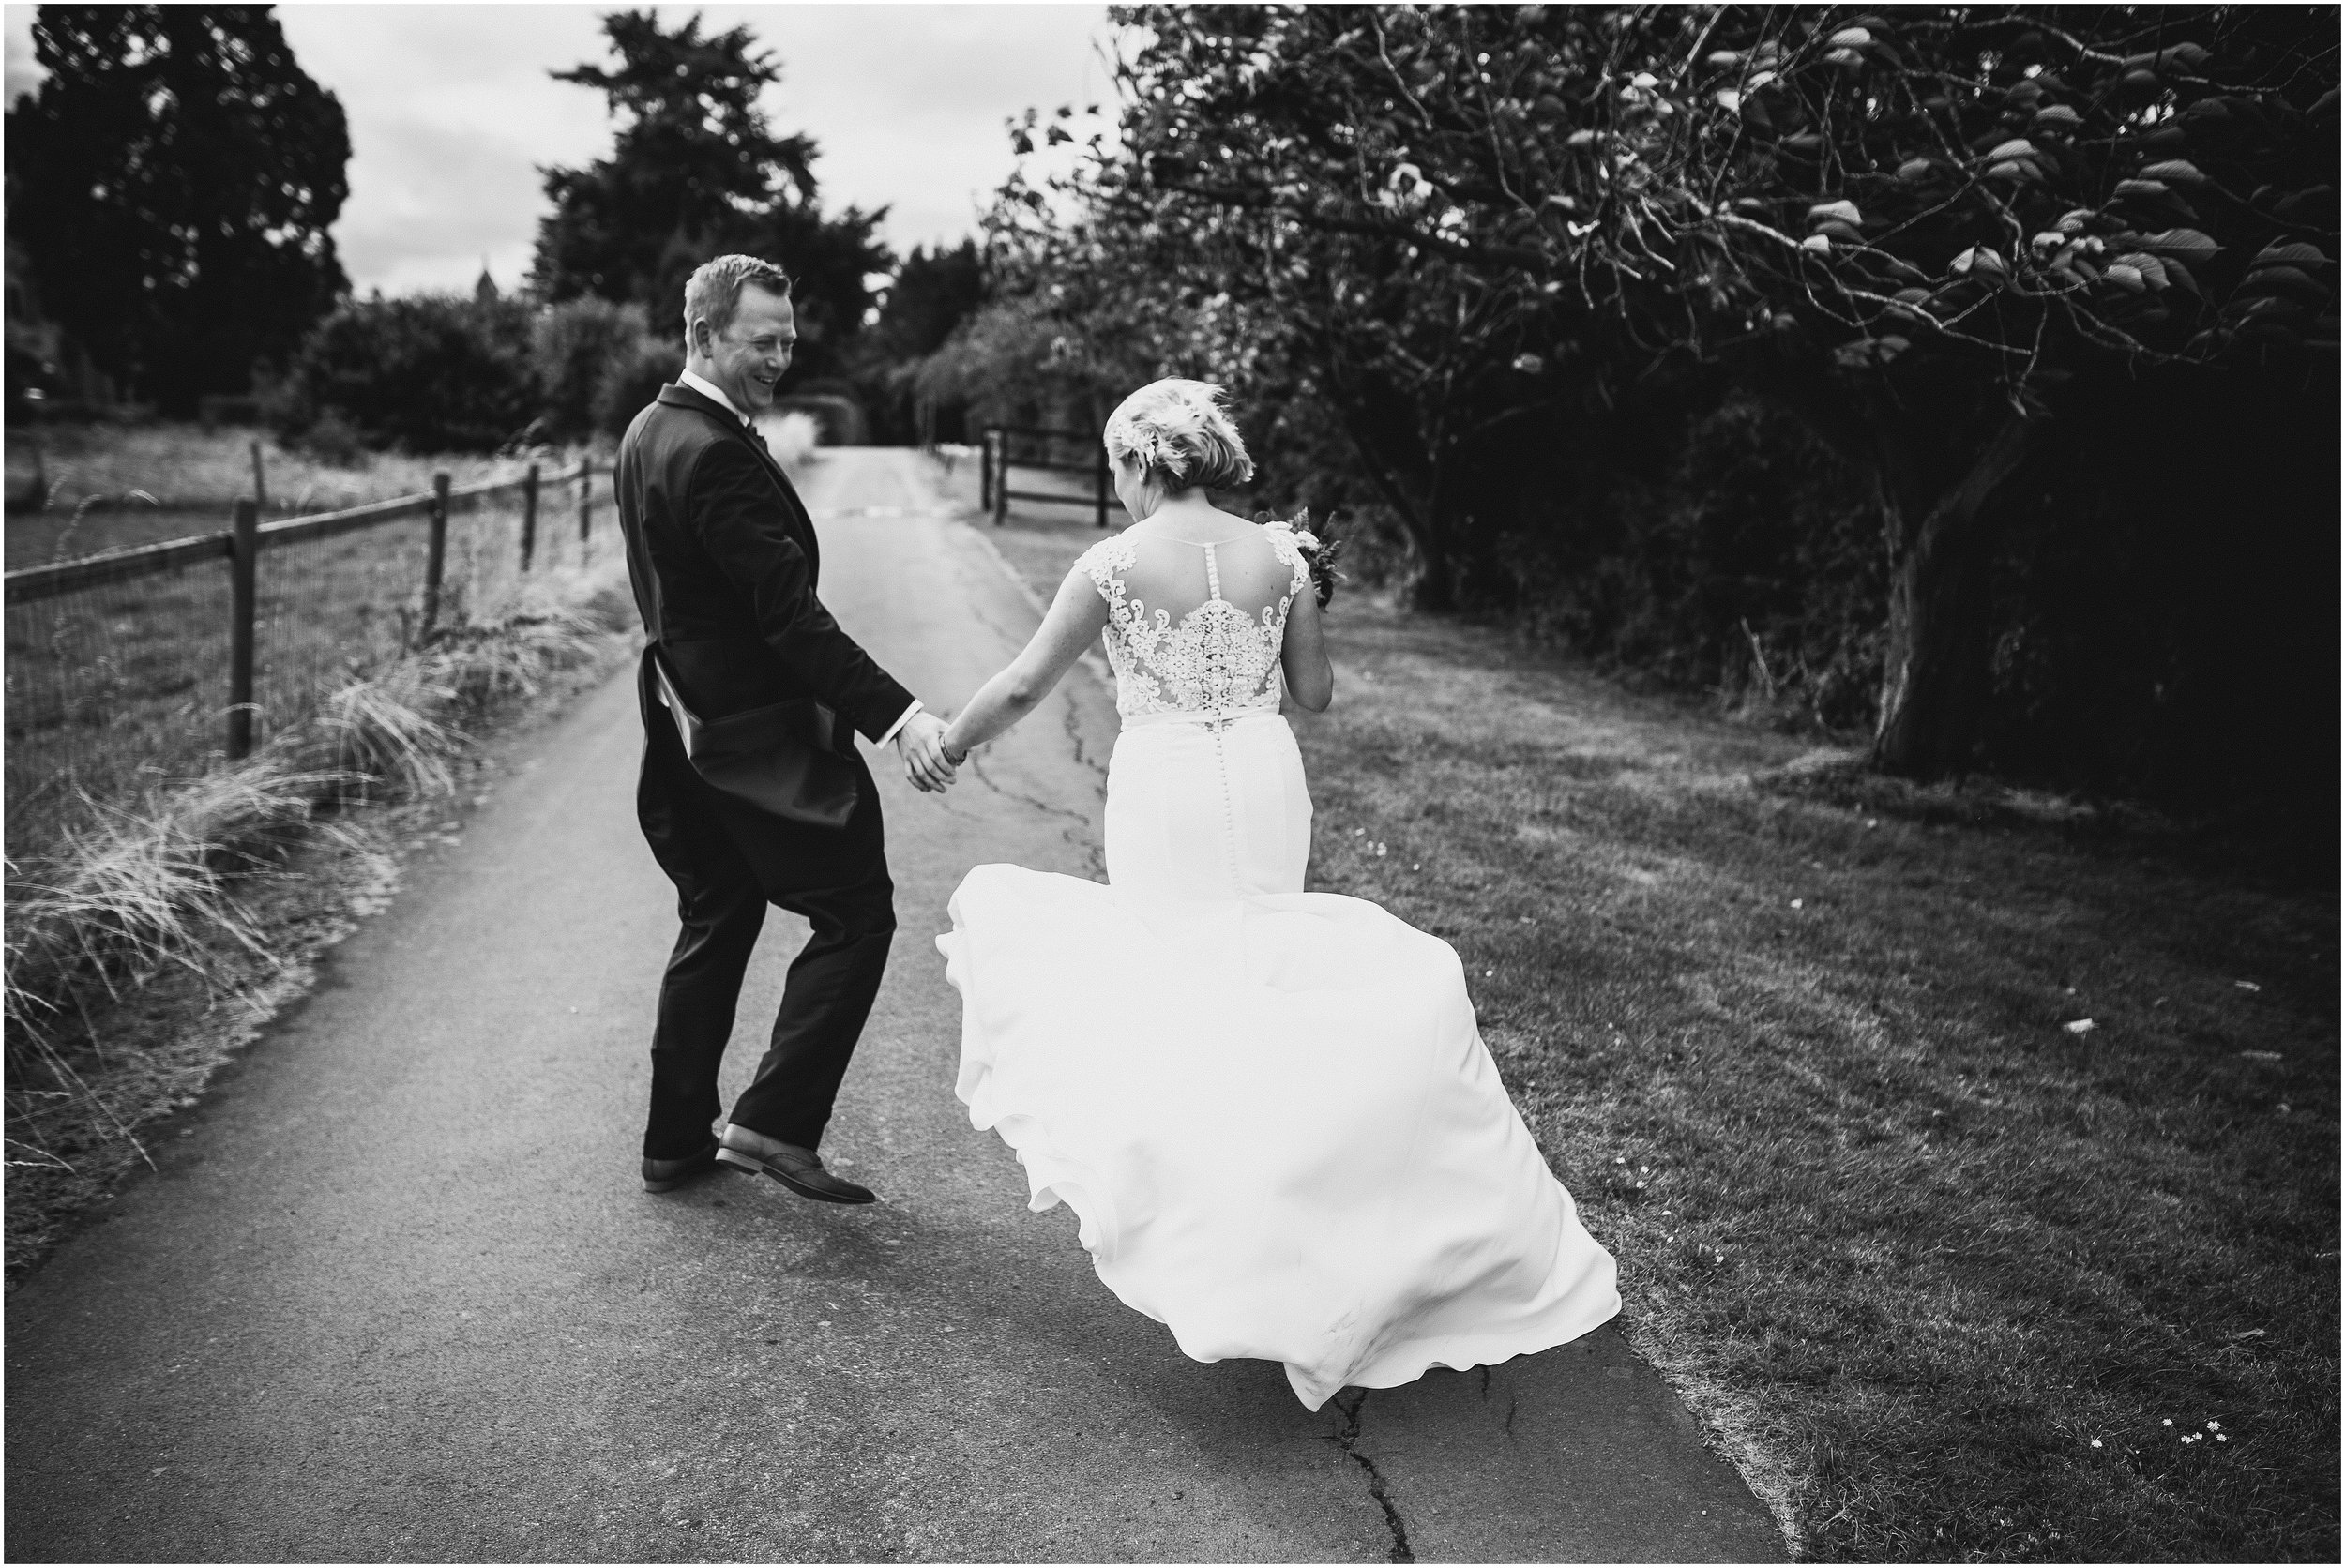 Brides dress gets blown by the wind at Overstone park Northamptonshire